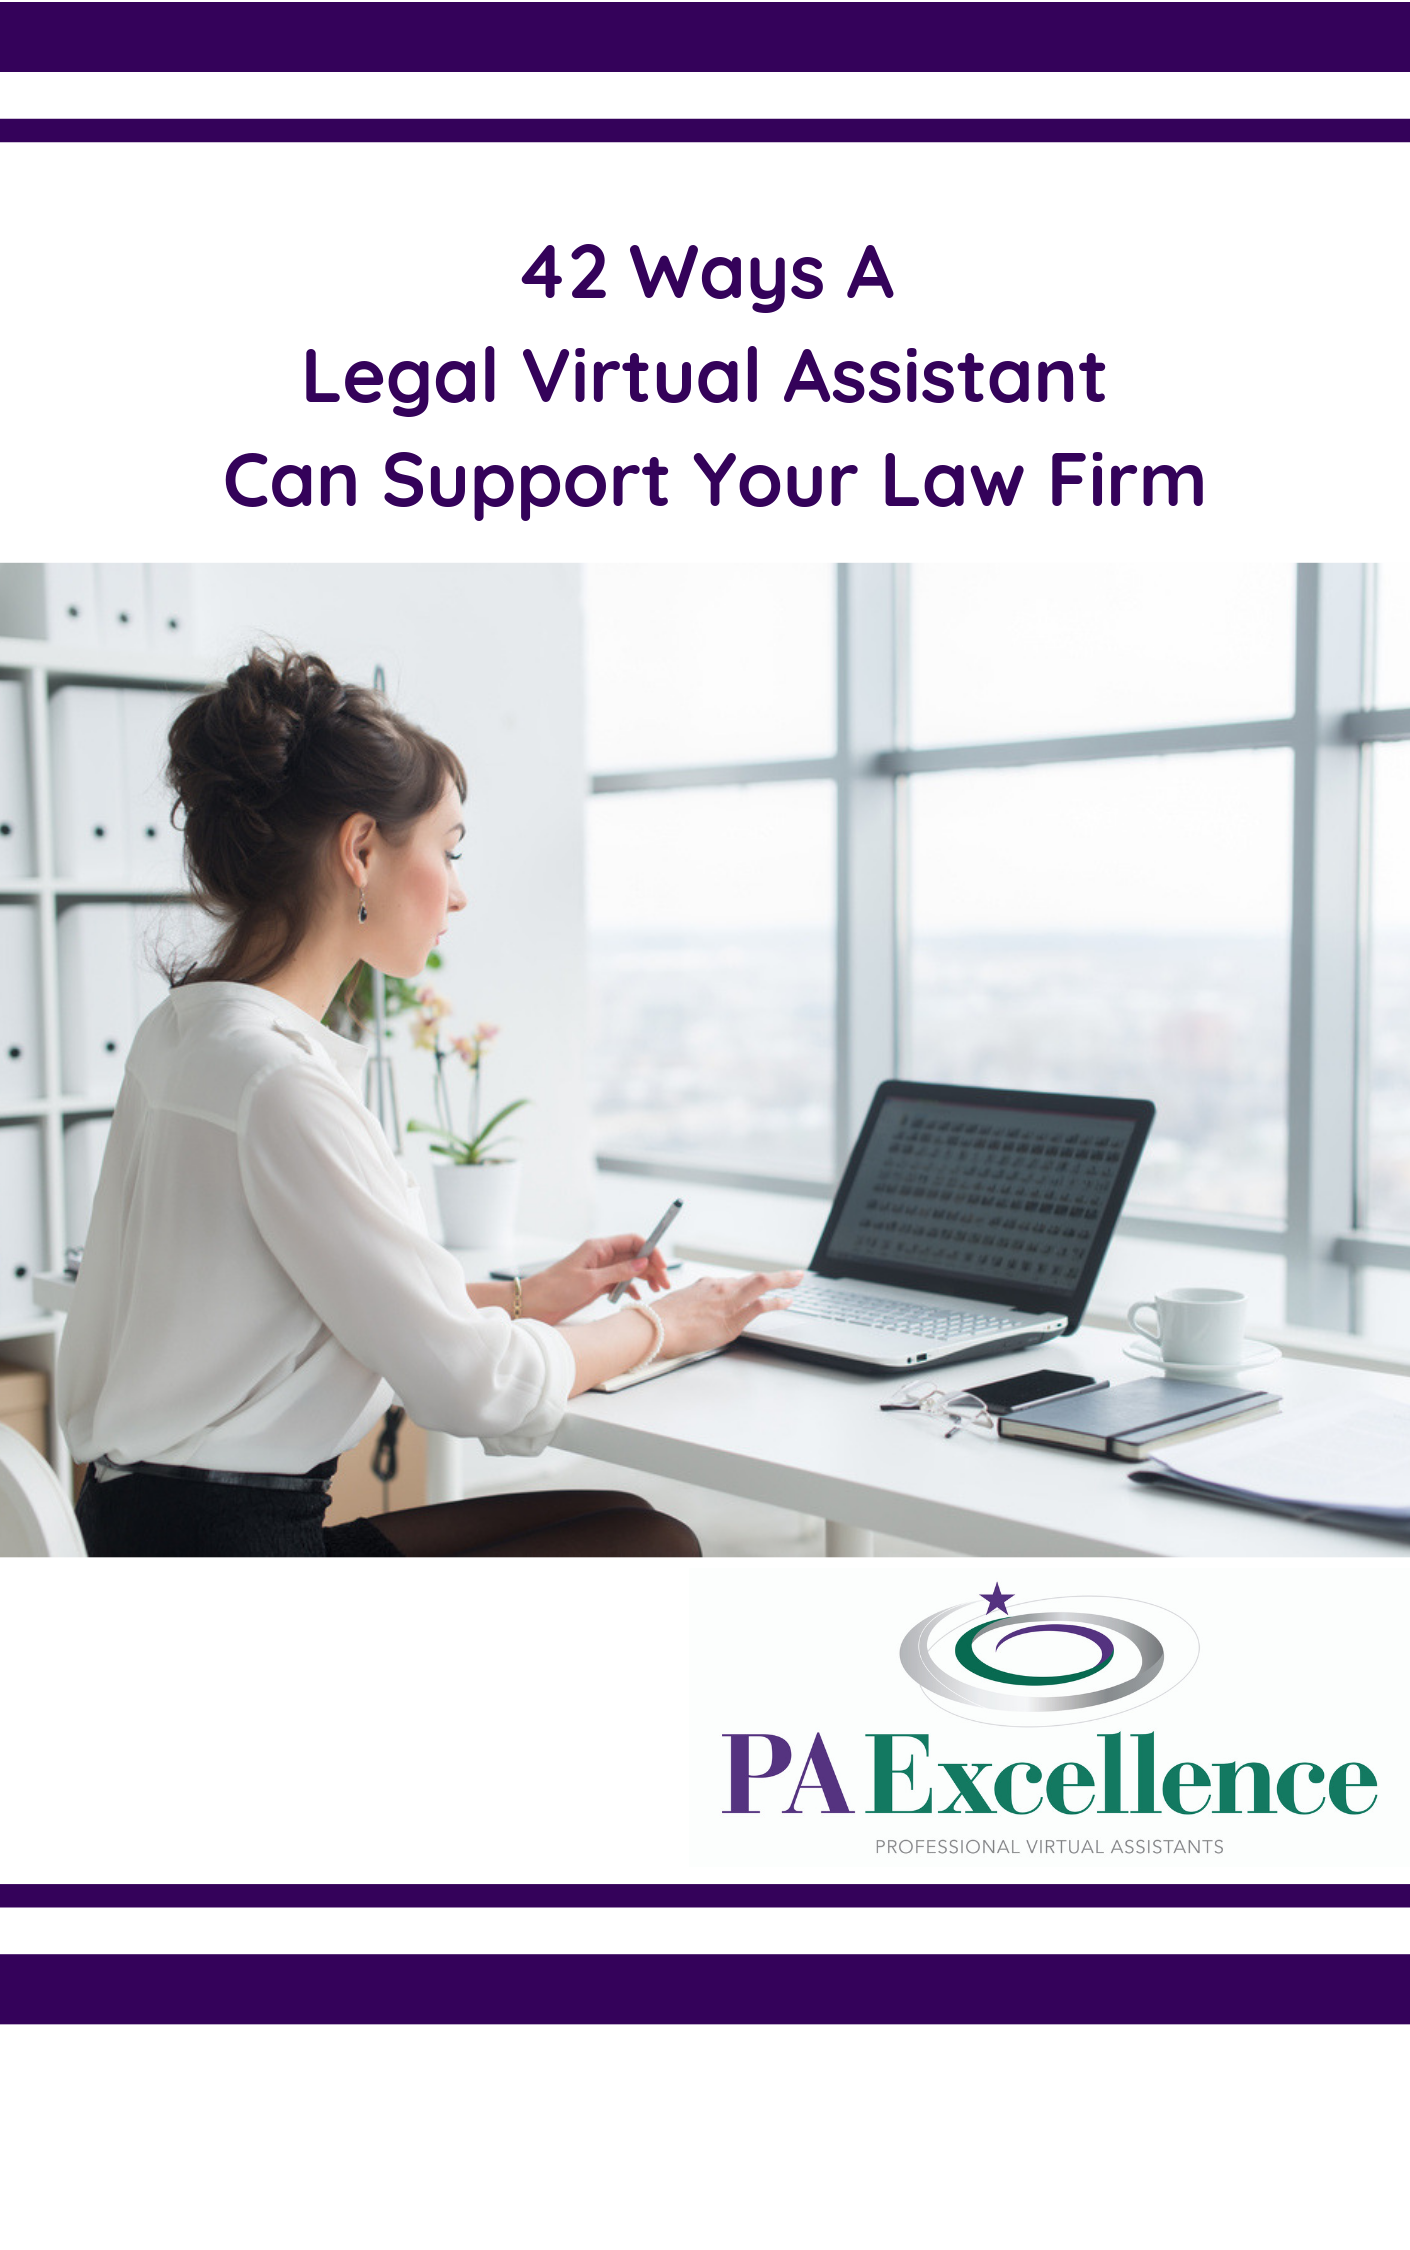 42 Ways a LVA Can Support Your Law Firm - small cover.png